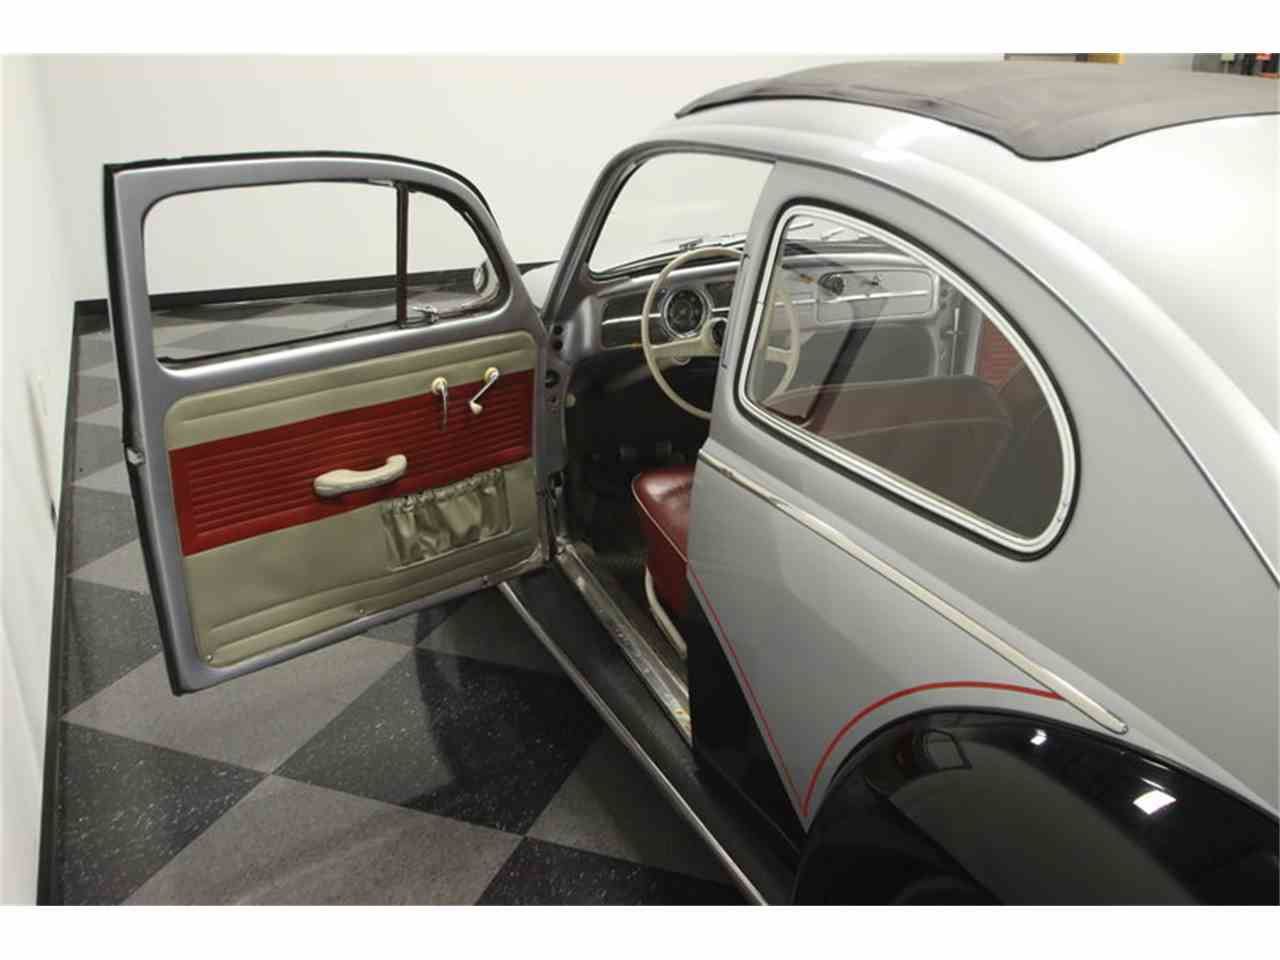 Large Picture of '60 Beetle located in Florida - $19,995.00 Offered by Streetside Classics - Tampa - M7TJ